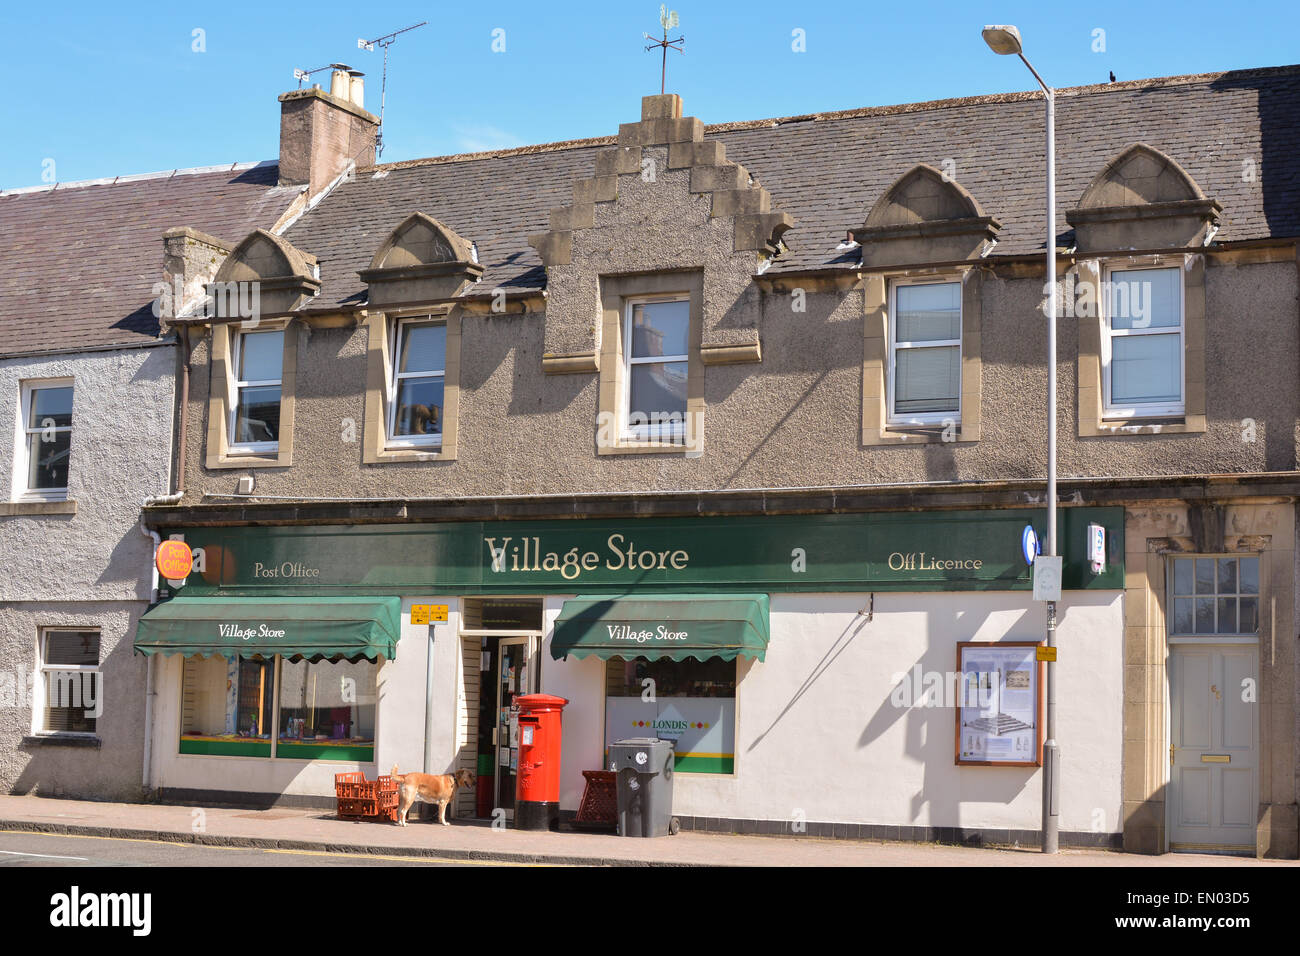 DOUNE, STIRLING, SCOTLAND, UK - 23 APRIL 2015: Village Store, Off Licence and Post Office in the rural village of - Stock Image